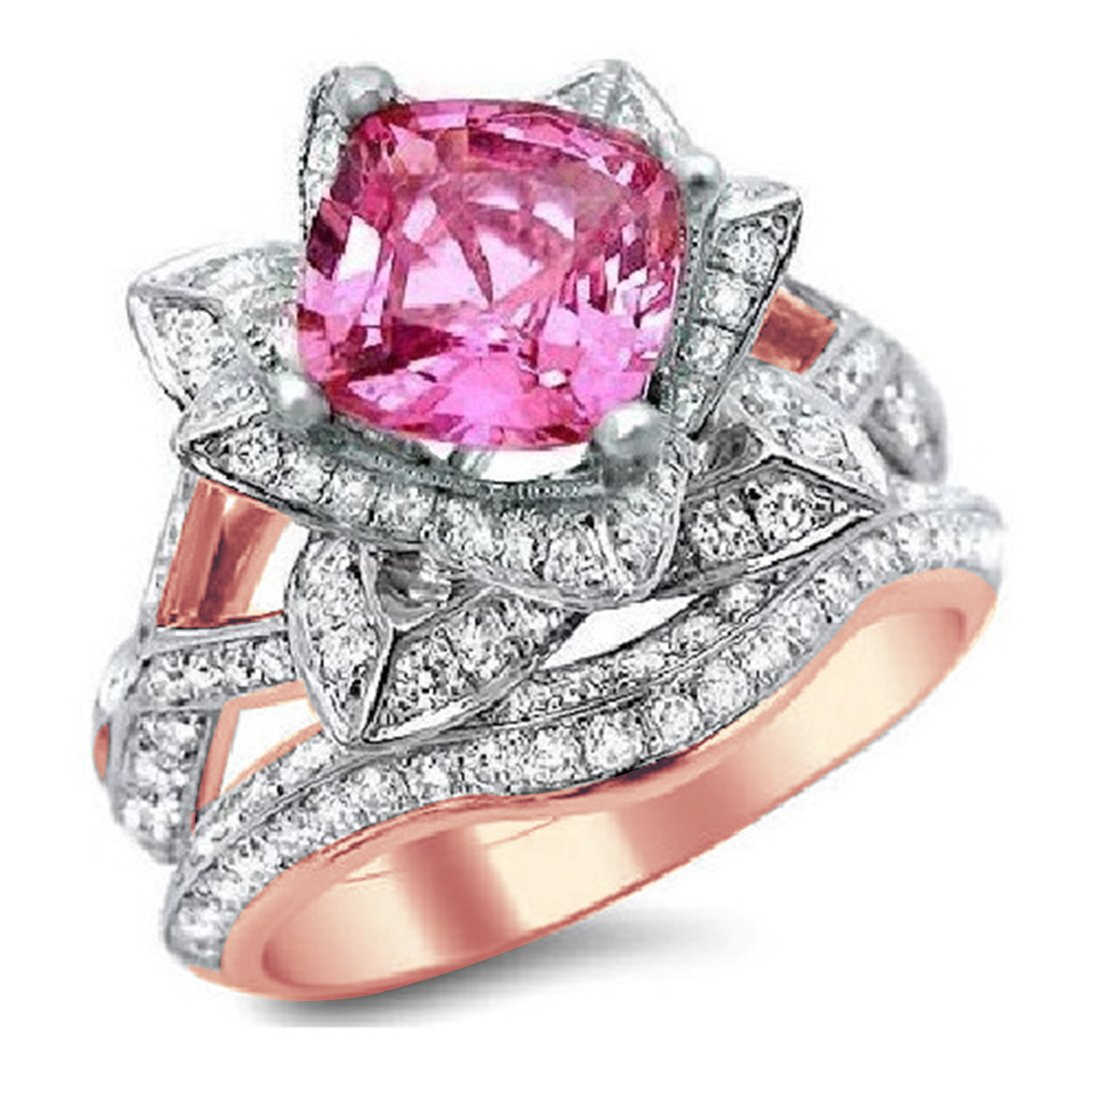 Smjewels 2.75Ct Cushion Cut Sapphire Lotus Flower CZ Diamond Ring Bridal Set 14K Rose Gold Fn